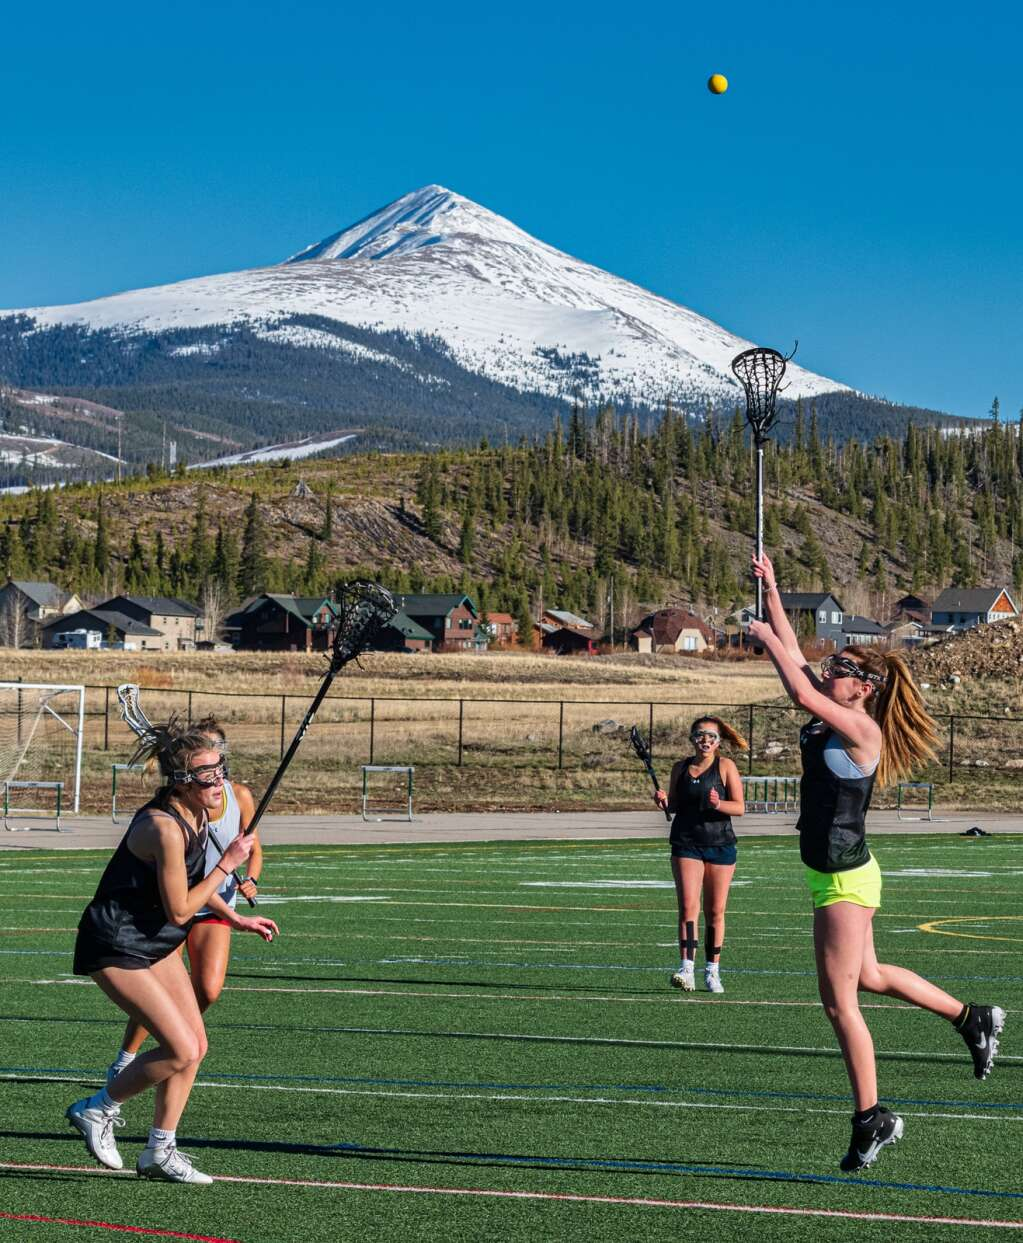 Kallie MacDonald, Caroline Fischer and Lindsay Davis practice with the Summit High School varsity girls lacrosse team at Tiger Stadium in Breckenridge on Thursday, May 6, 2021. | Photo by Joel Wexler / Rocky Mountain.Photography